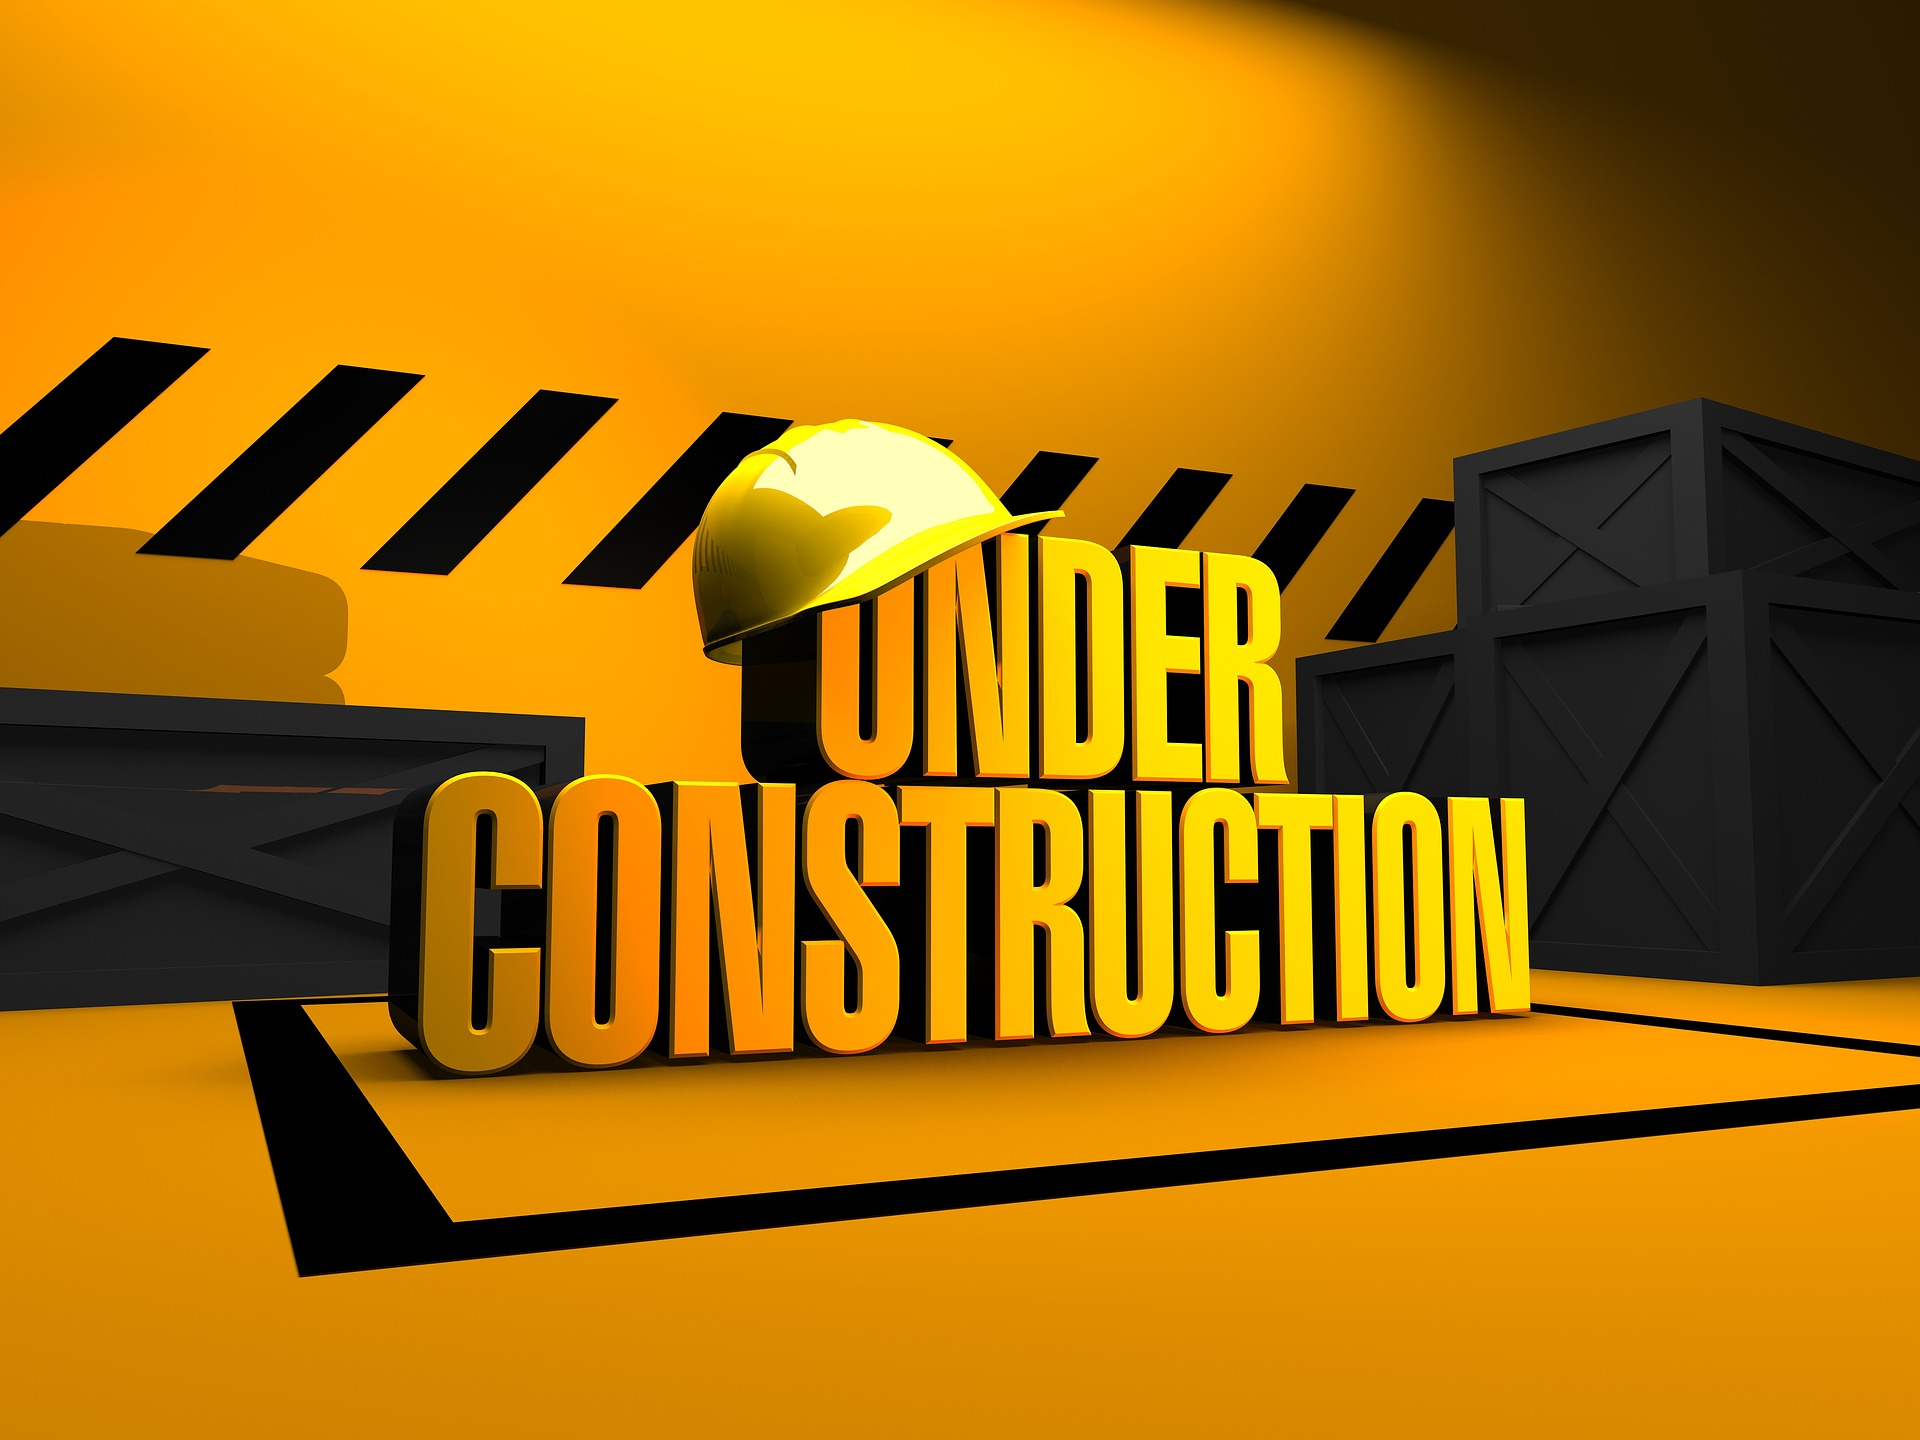 BOOMERBROADcast is under renovation